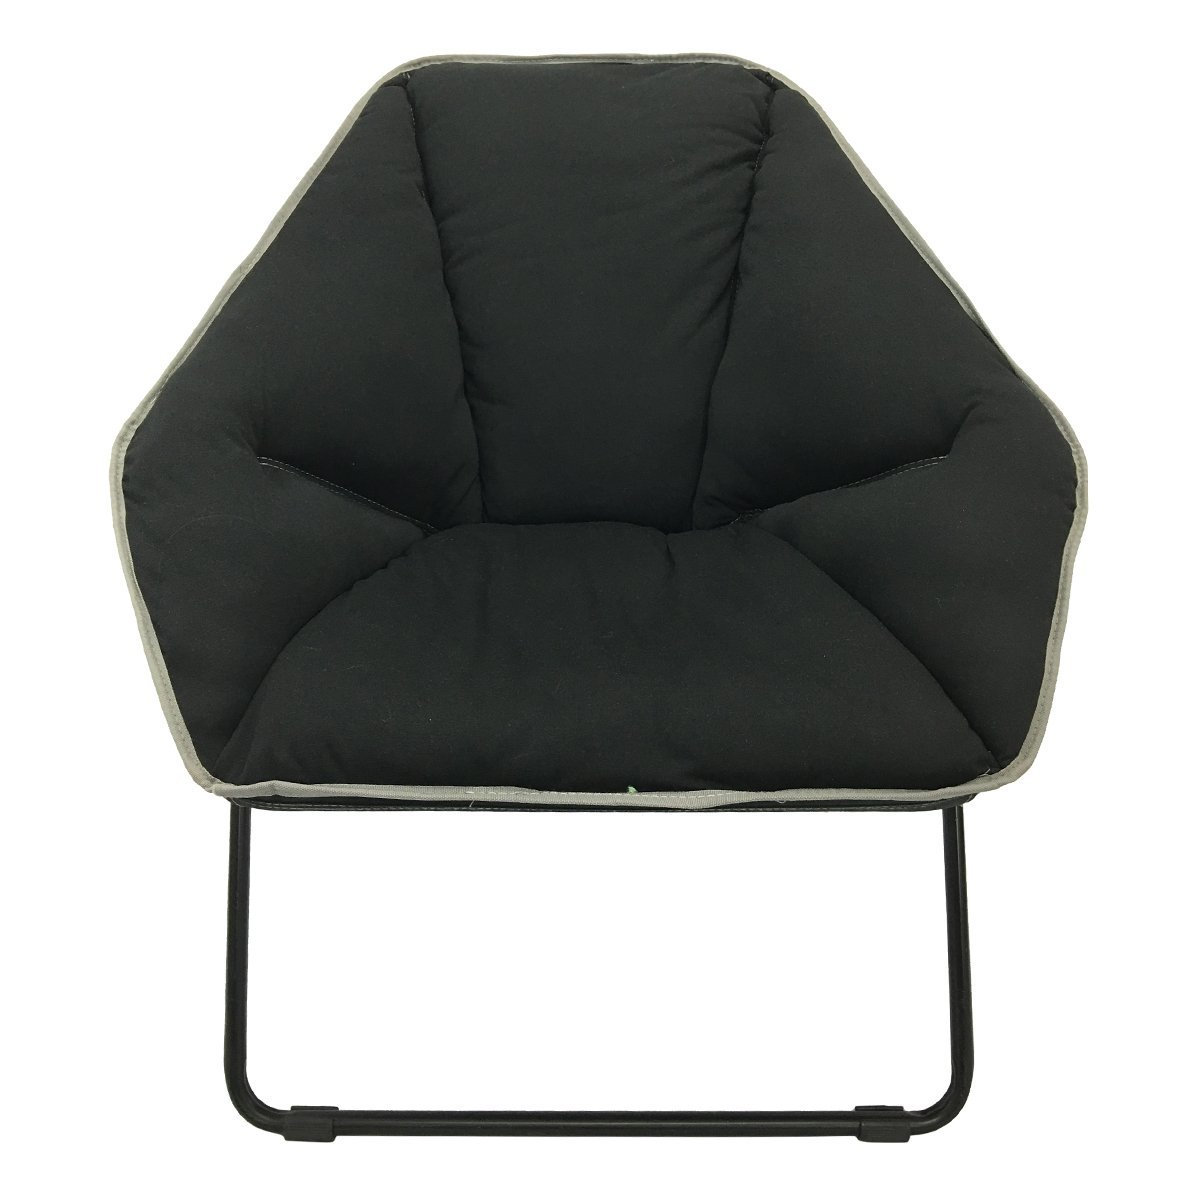 Stupendous Campzio Hexagonal Lounger Bungee Lounge Chair Round Bungee Chair Folding Comfortable Lightweight Portable Indoor Outdoor Black Pdpeps Interior Chair Design Pdpepsorg